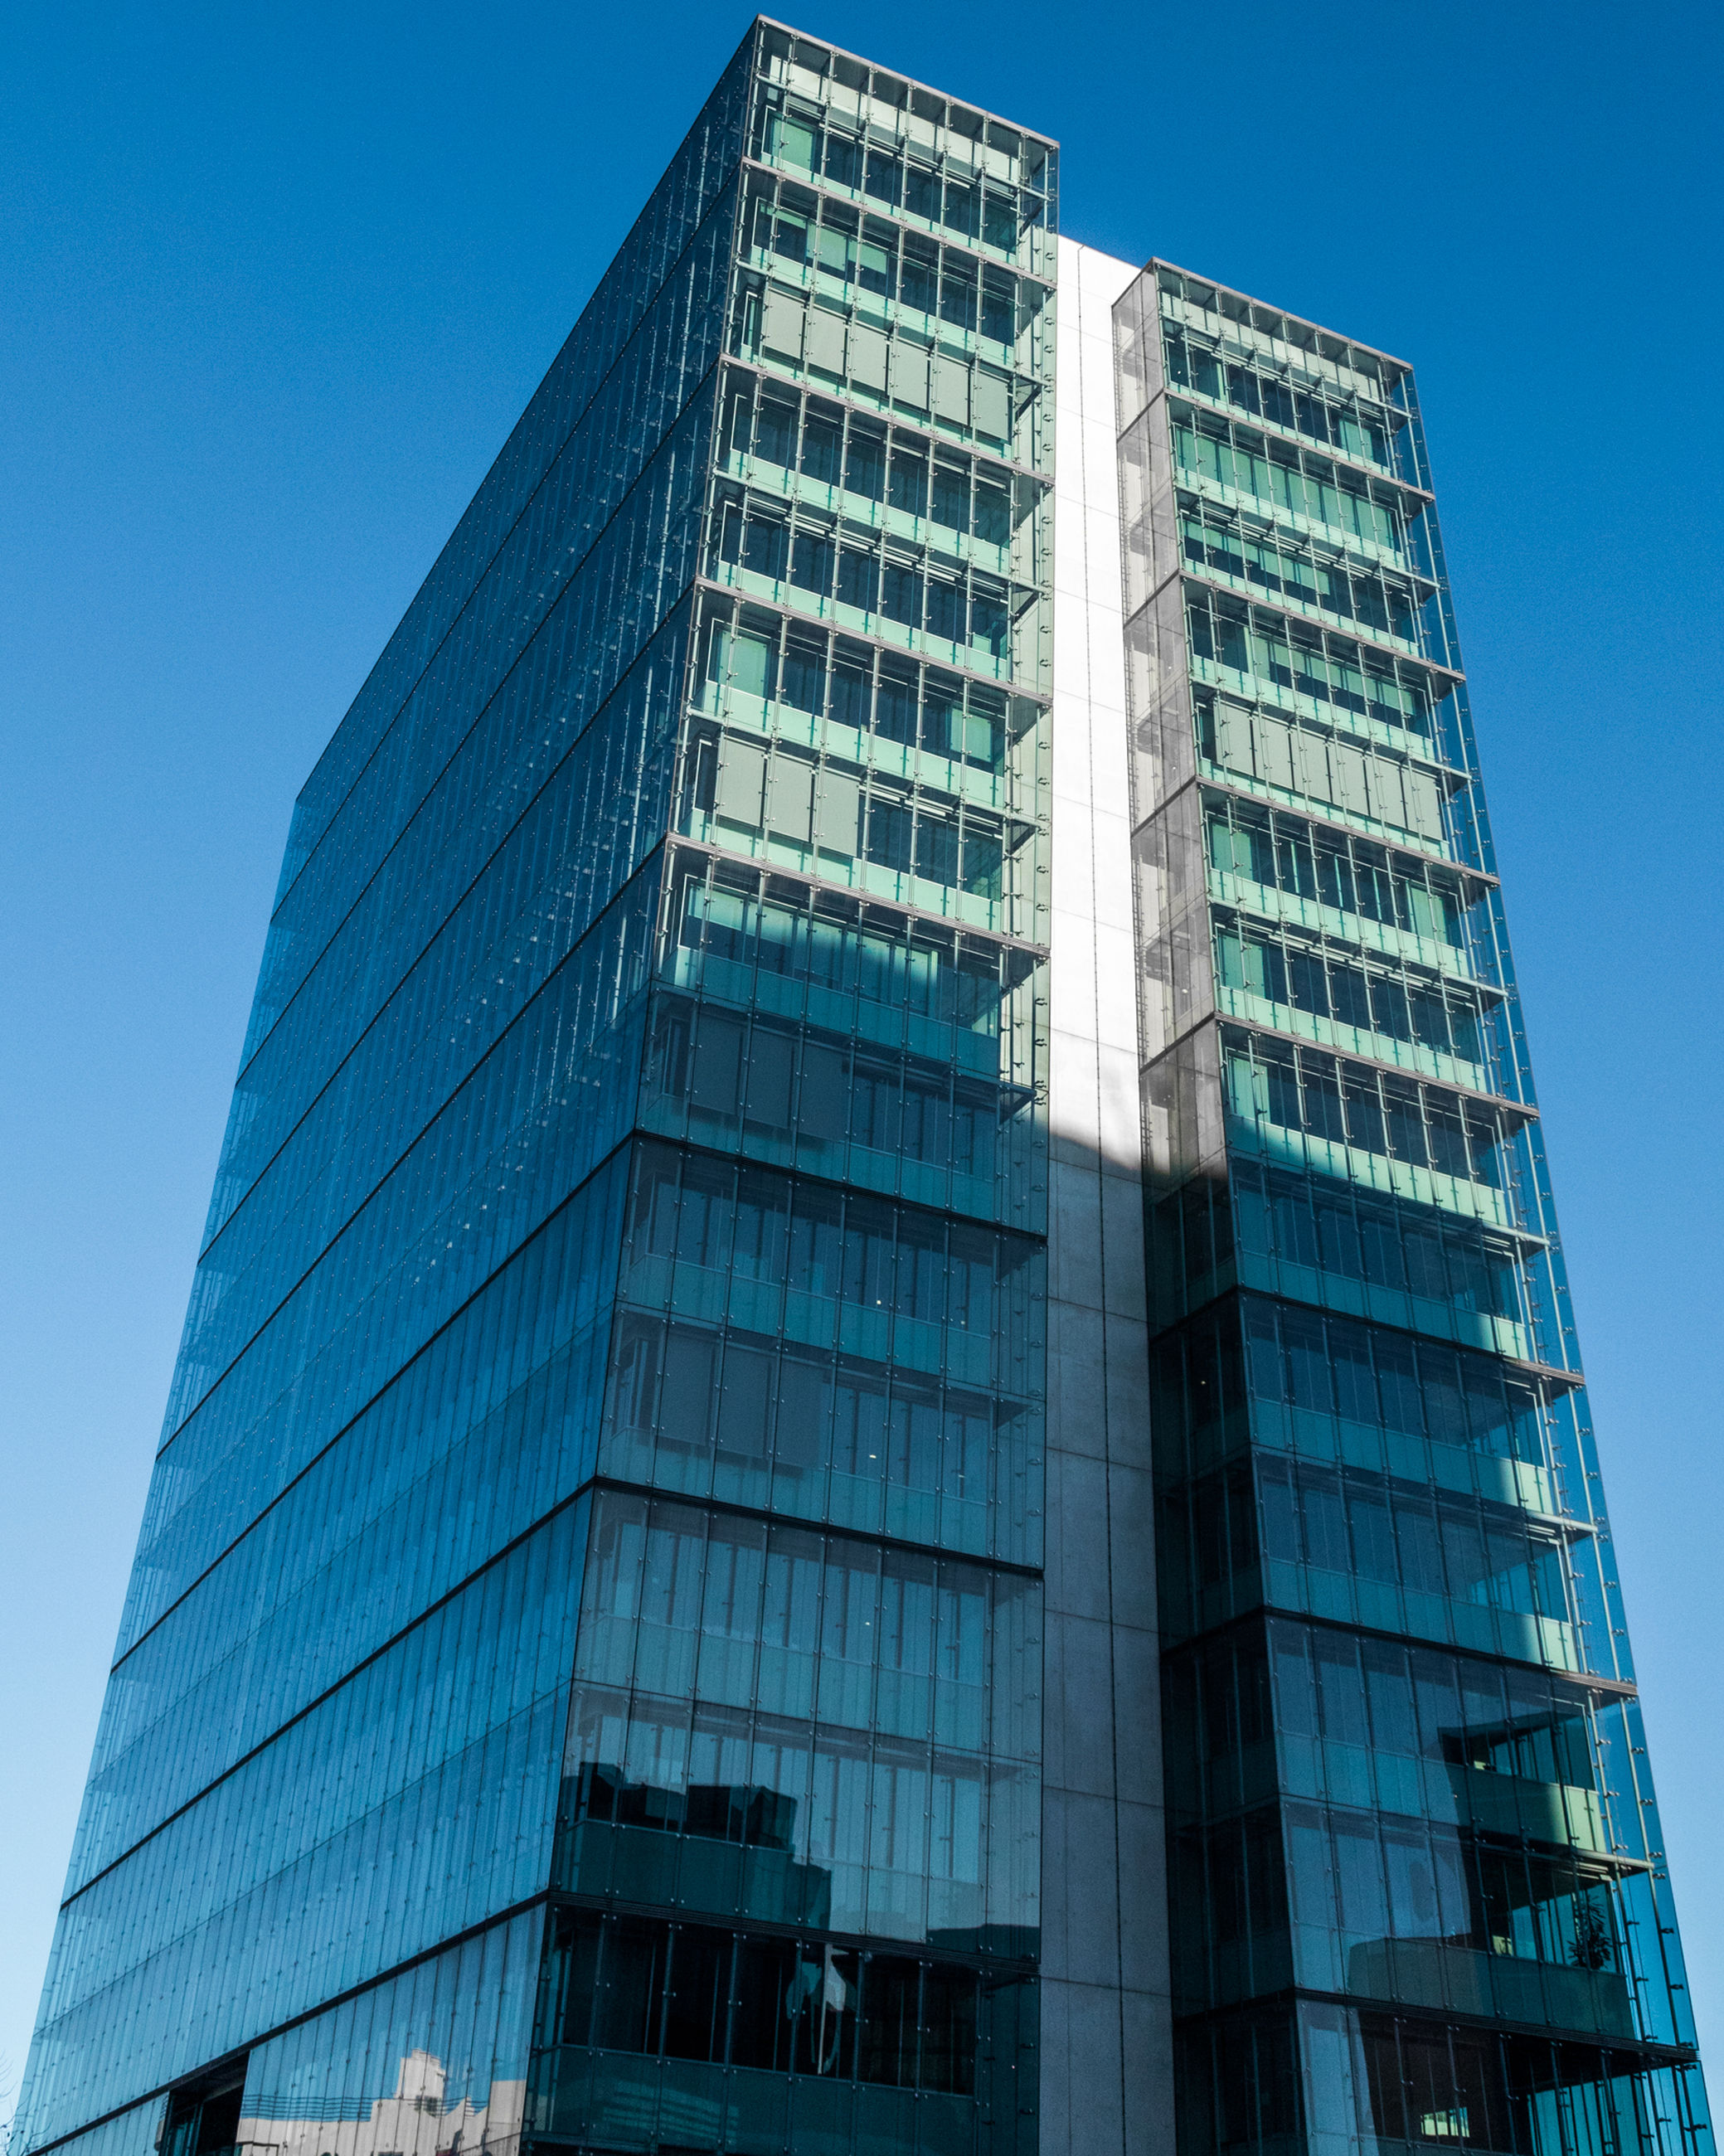 built structure, low angle view, architecture, building exterior, office building exterior, modern, sky, office, city, clear sky, glass - material, building, no people, blue, tall - high, skyscraper, nature, reflection, day, tower